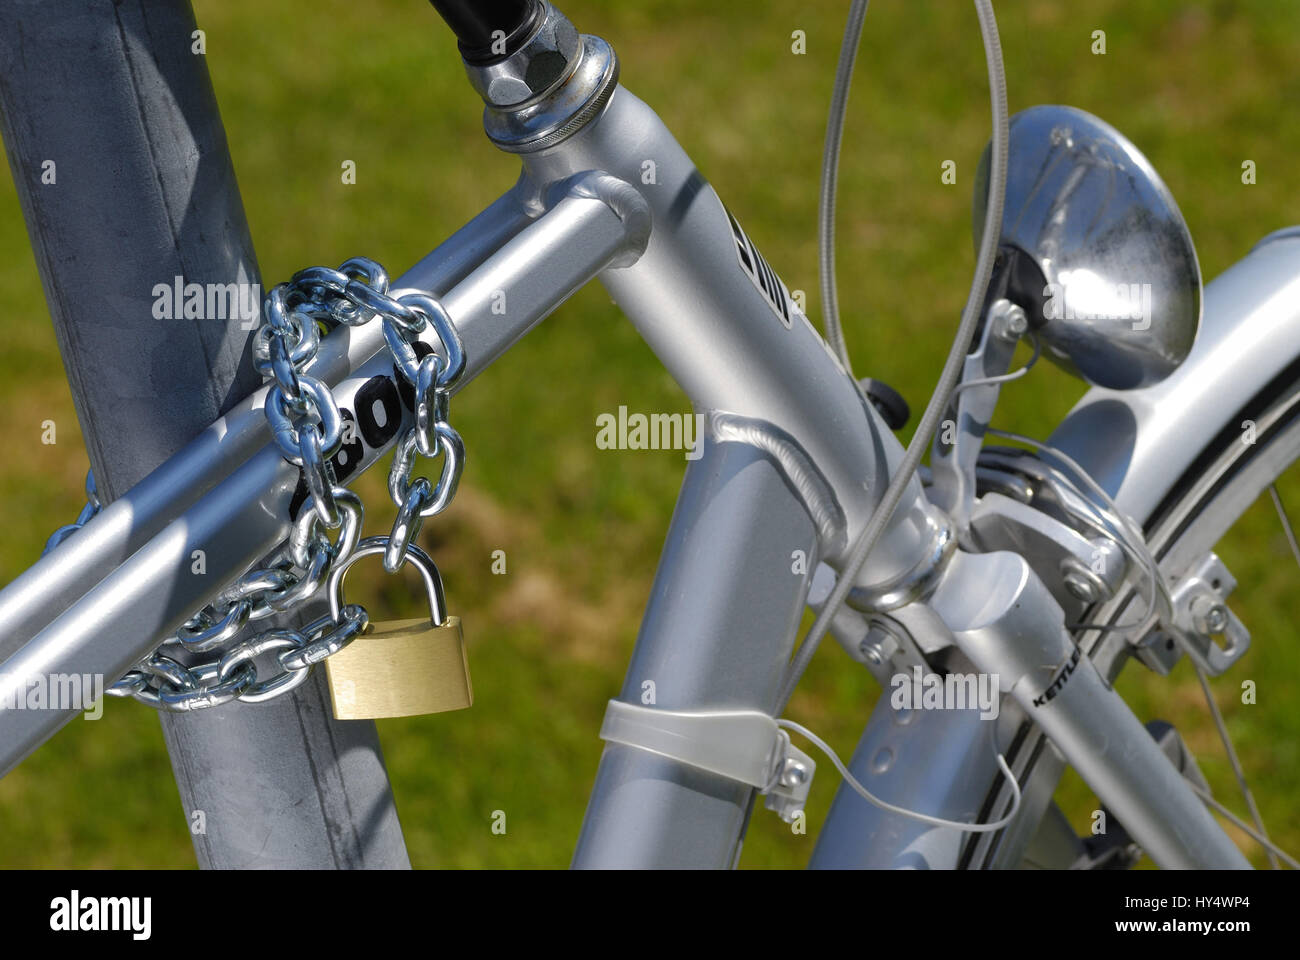 Bike Raeder Stockfotos & Bike Raeder Bilder - Alamy